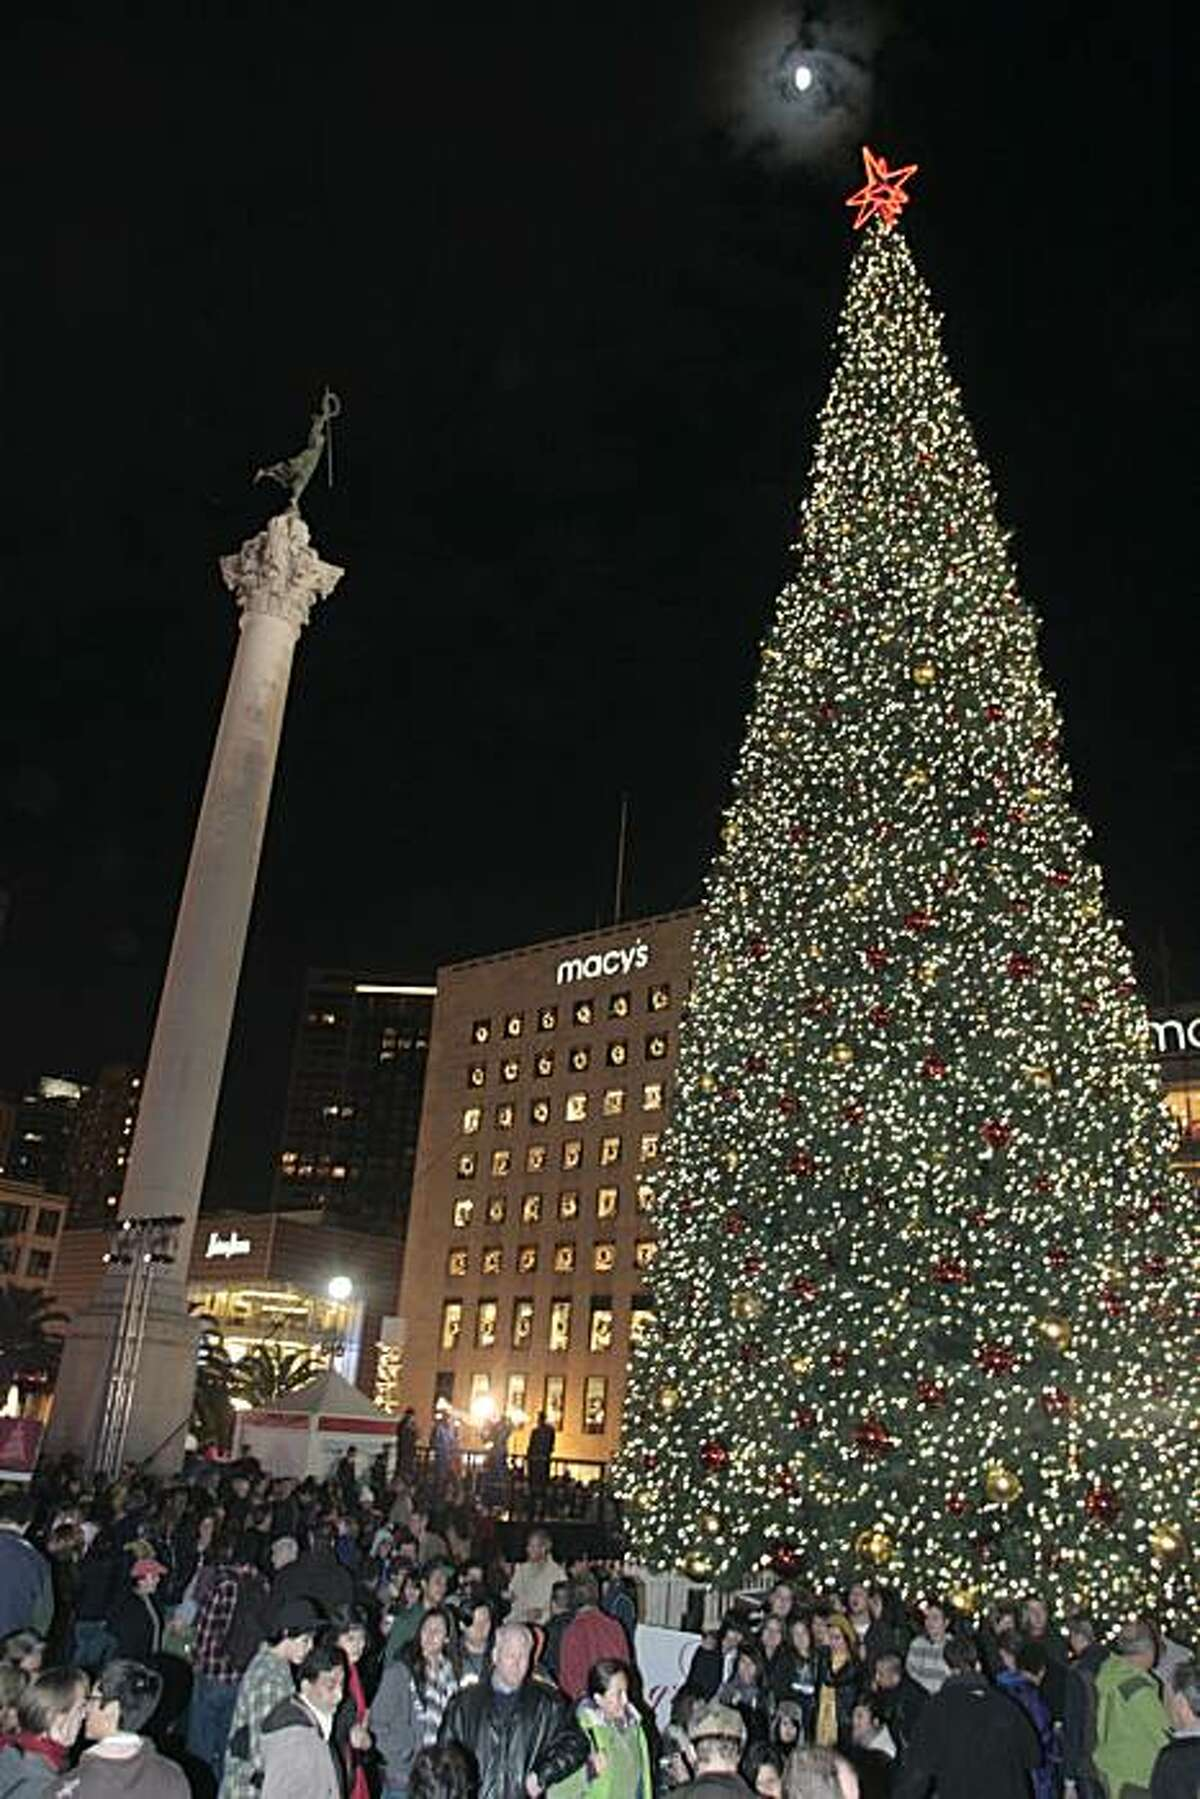 The lighting of an 85-foot Christmas tree at Union Square on Friday in San Francisco.